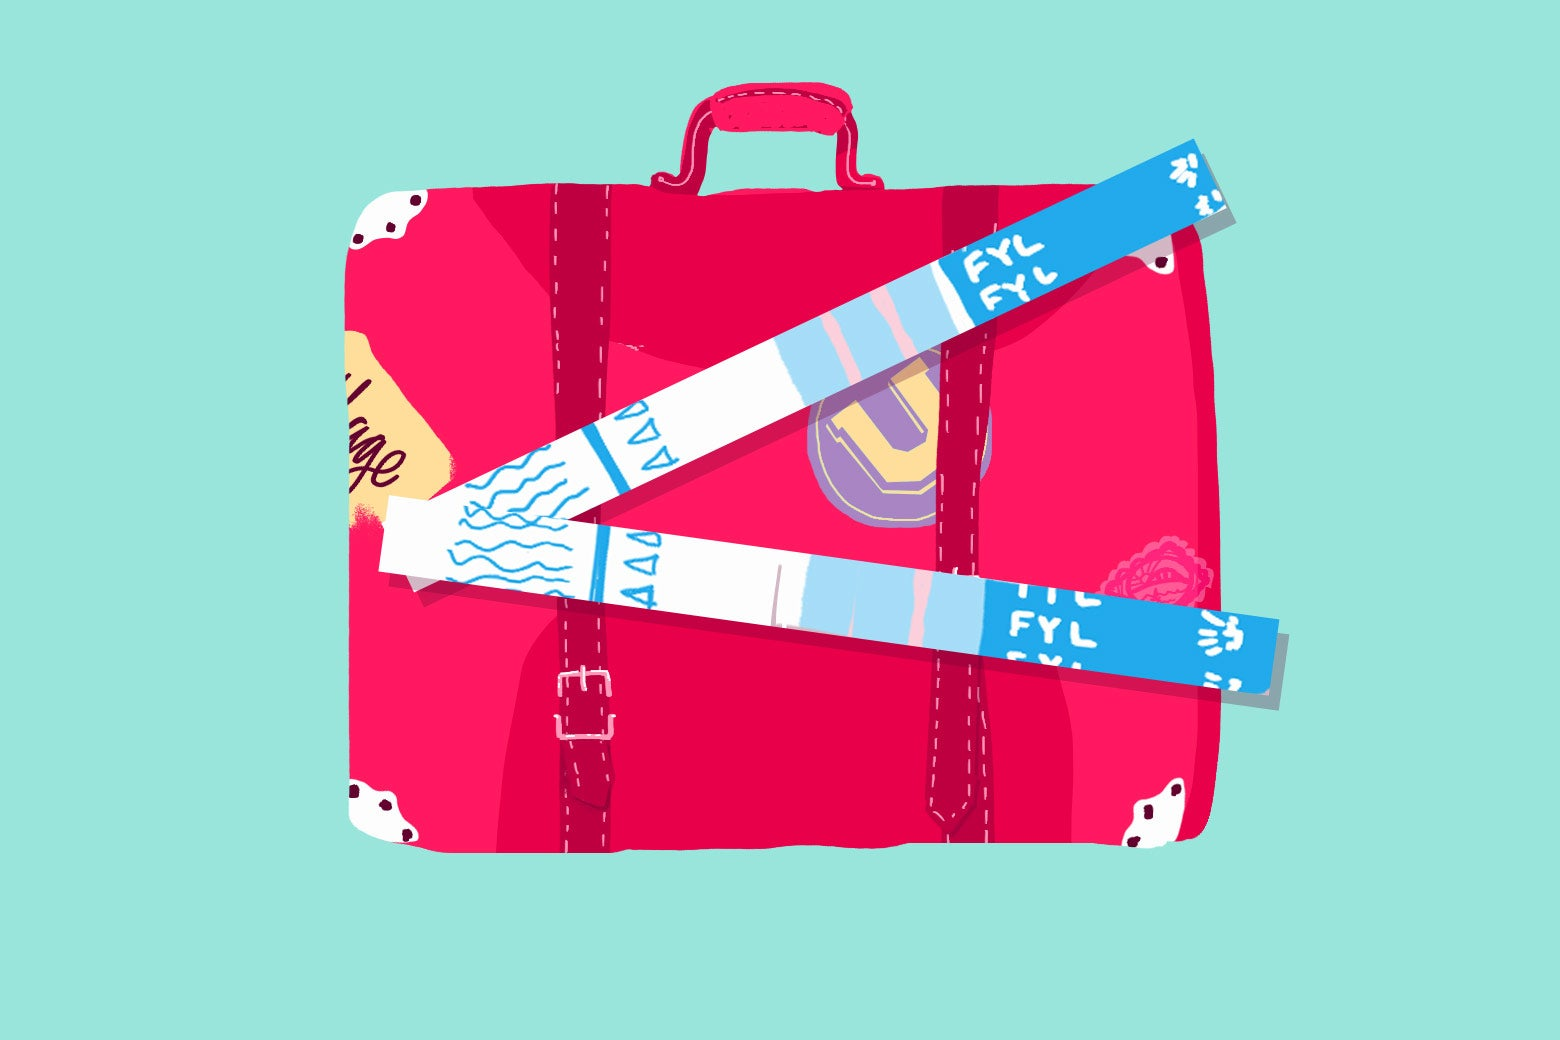 Luggage with FYL test strips.